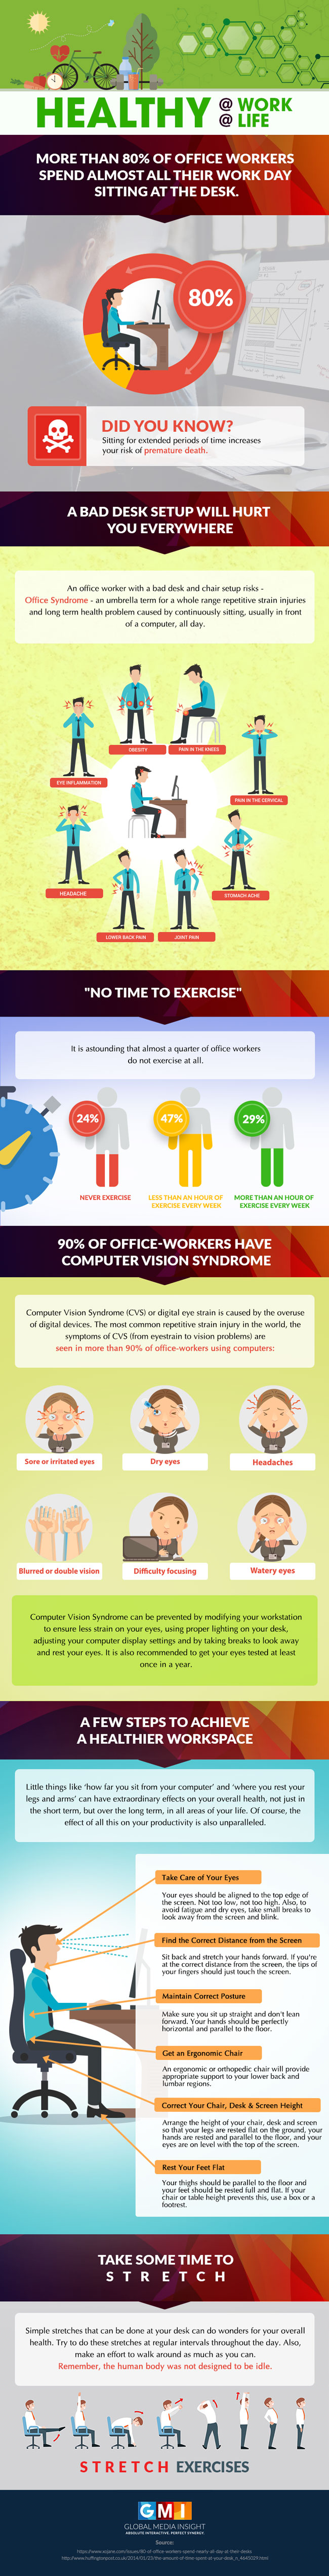 Office Health and Wellness Tips by Global Media Insight